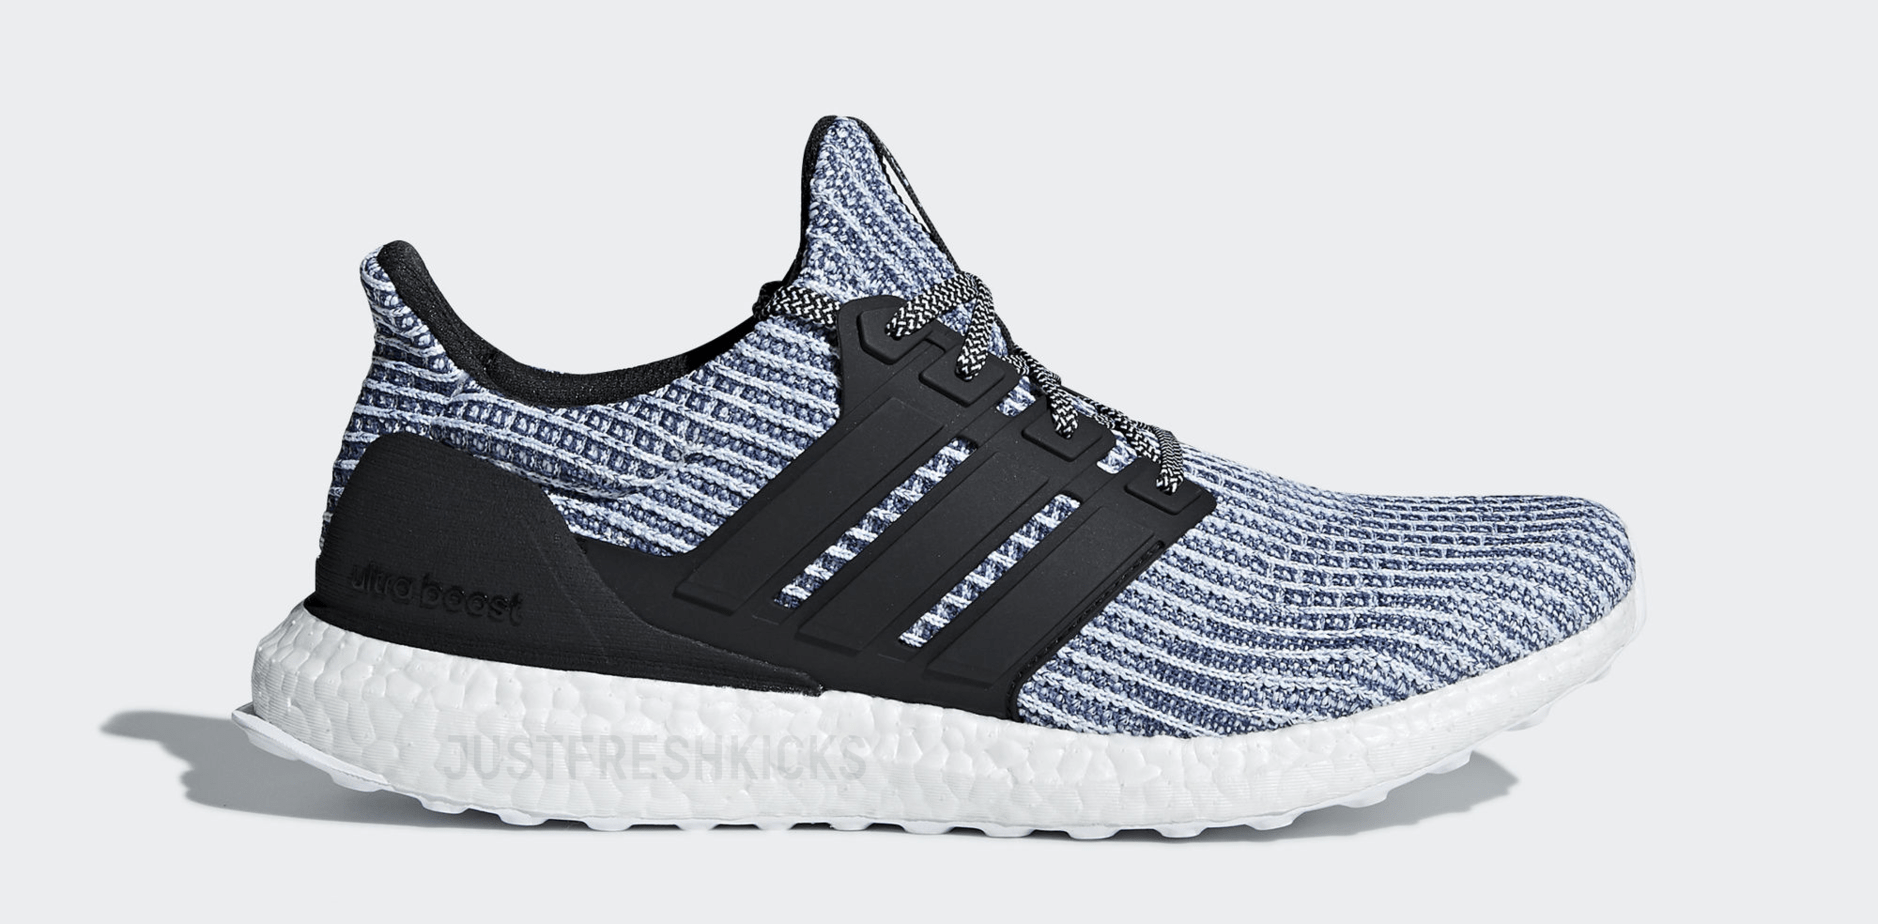 a1de4db5b1f9ba Parley and adidas Will Return With Another Ultra Boost 4.0 Next Week